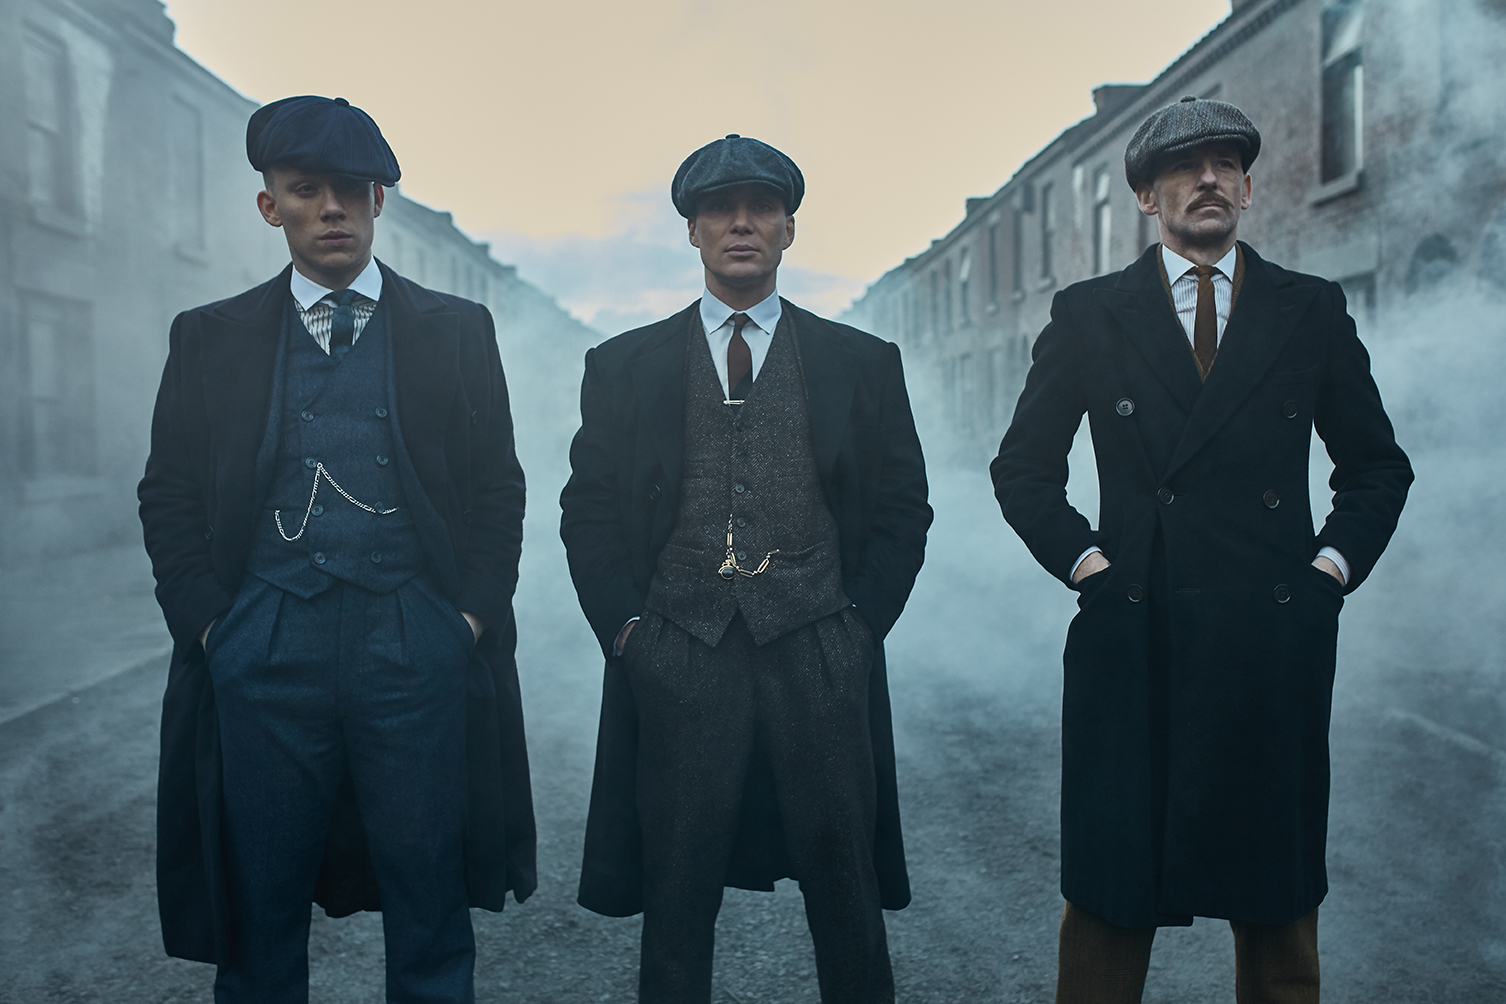 Peaky Blinders: Mean Streets - The American Society of Cinematographers